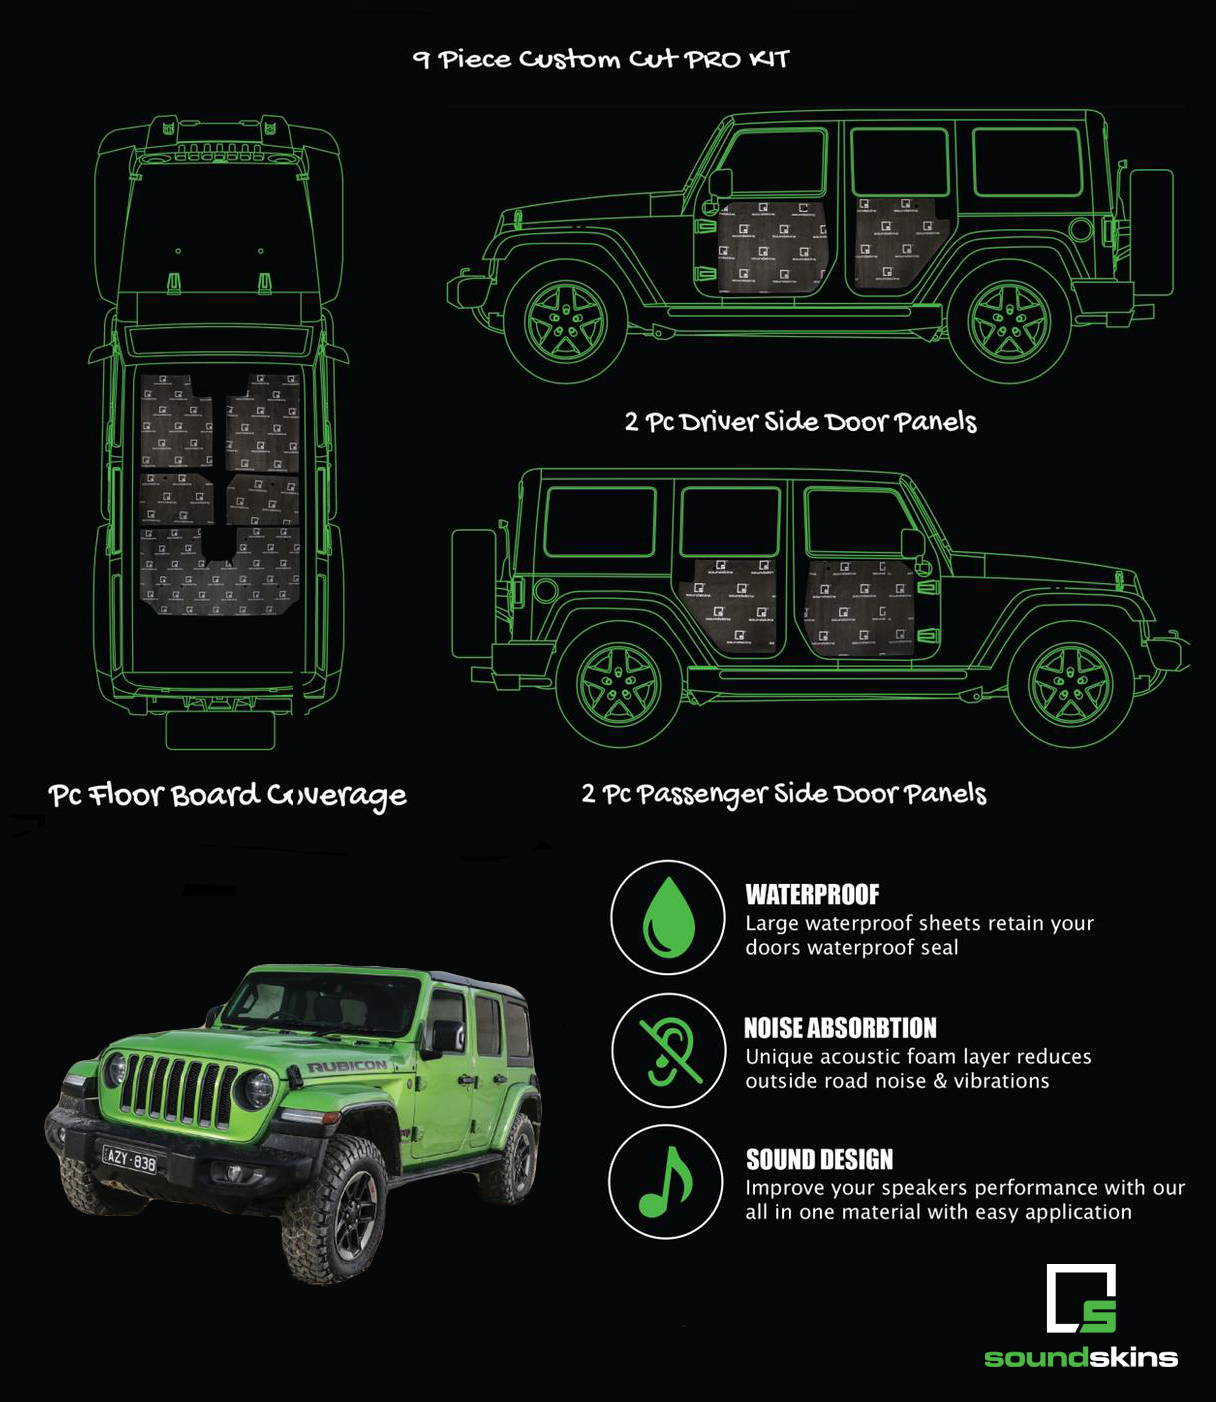 SoundSkins Pro Jeep Wrangler Kit